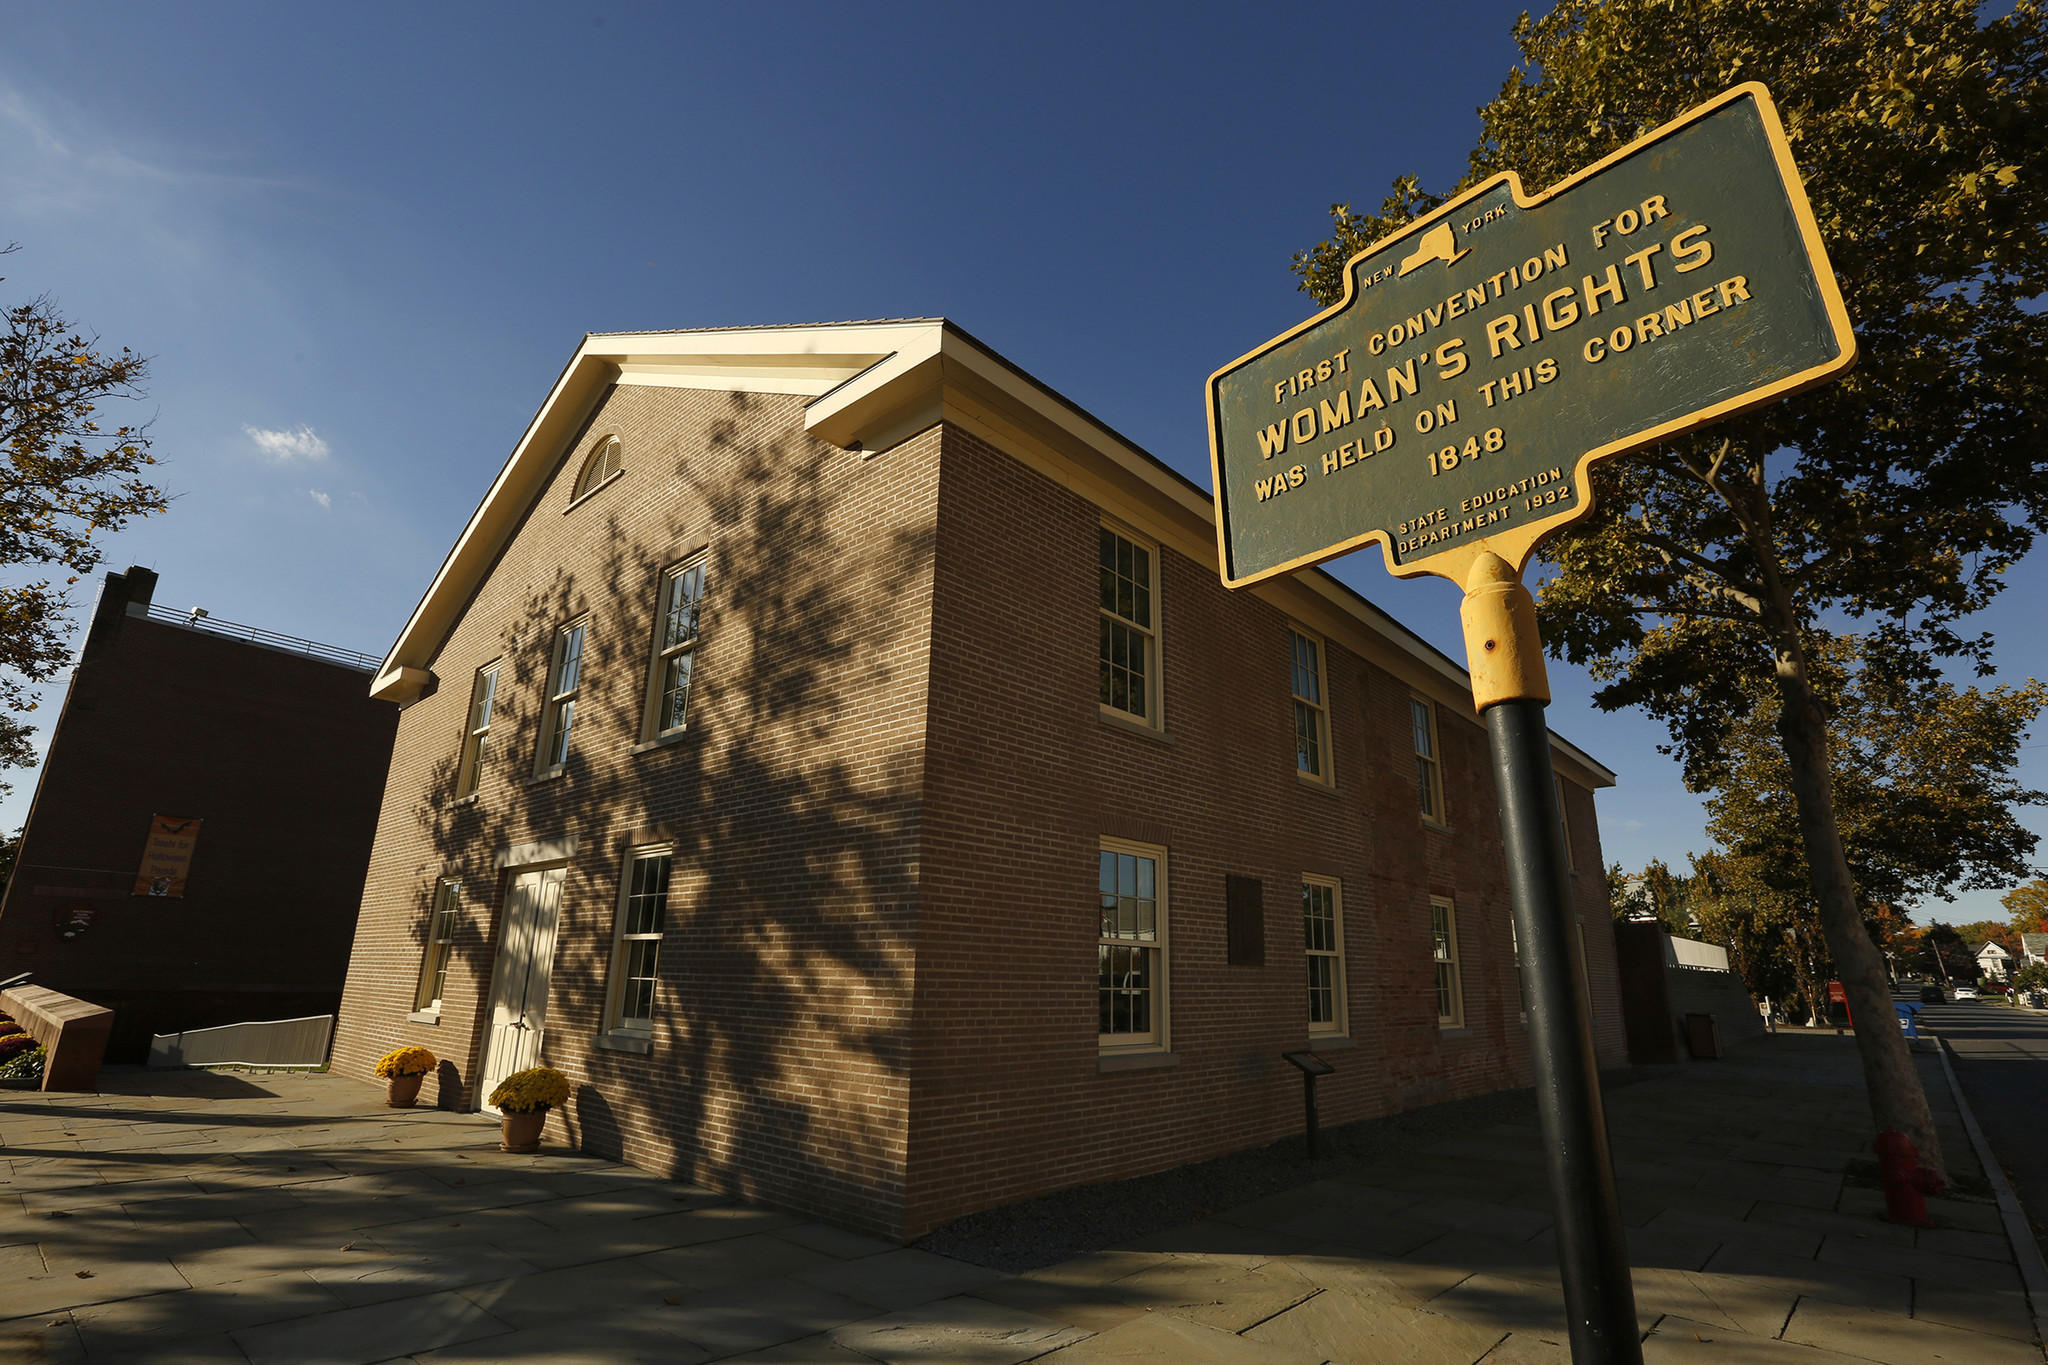 The first women's rights convention was held here at the Wesleyan Chapel in 1848, now part of the Women's Rights National Historic Park.